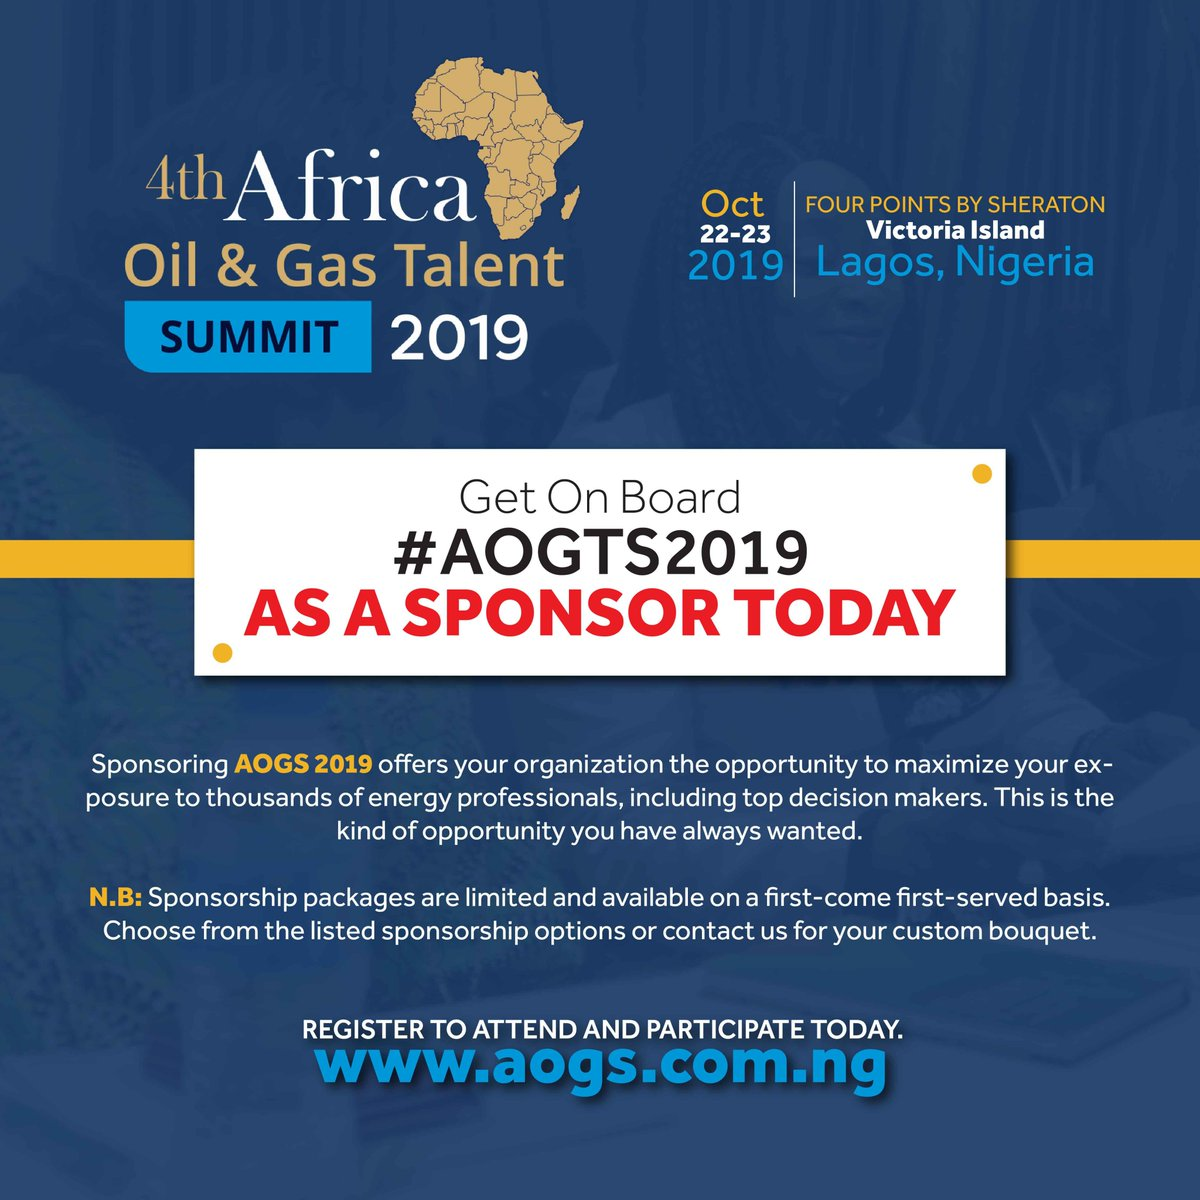 Africa Oil Gas Talent Summit (@africaogtsummit) | Twitter